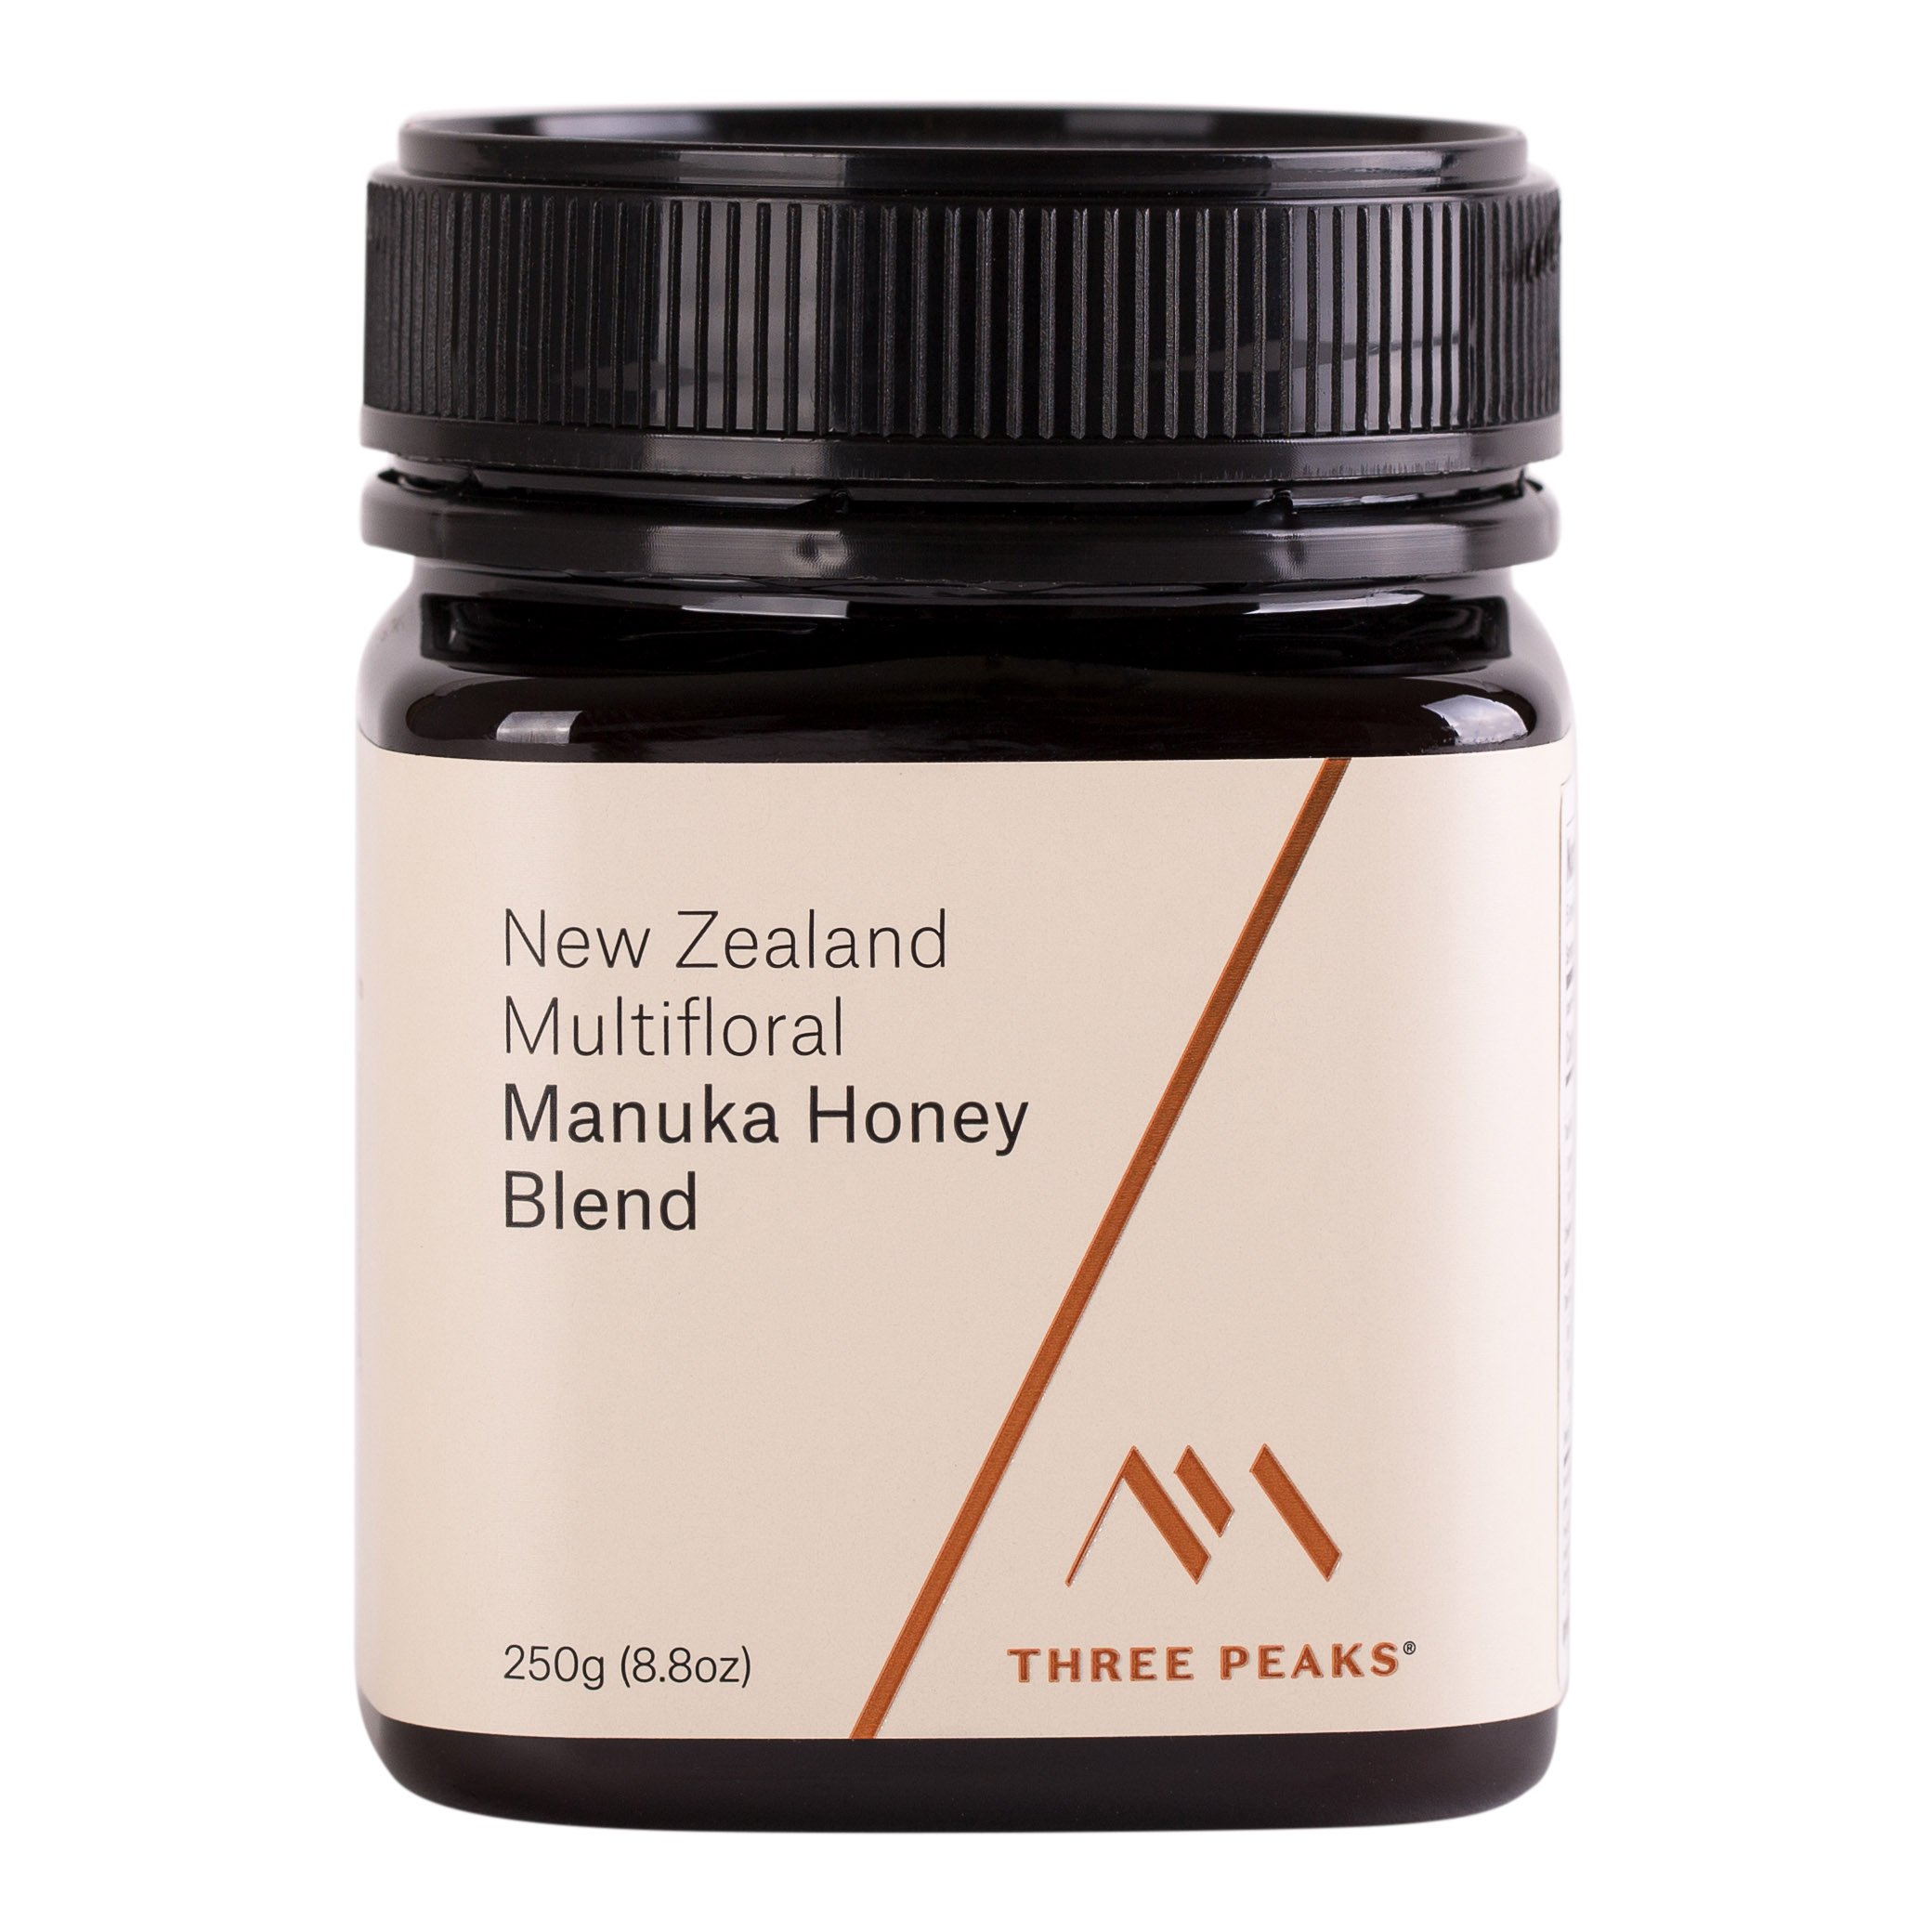 Three Peaks Manuka Honey New Zealand – Multifloral Blend, 8.81 oz (250gm) - 100% Natural honey, Raw honey – Healing Manuka honey